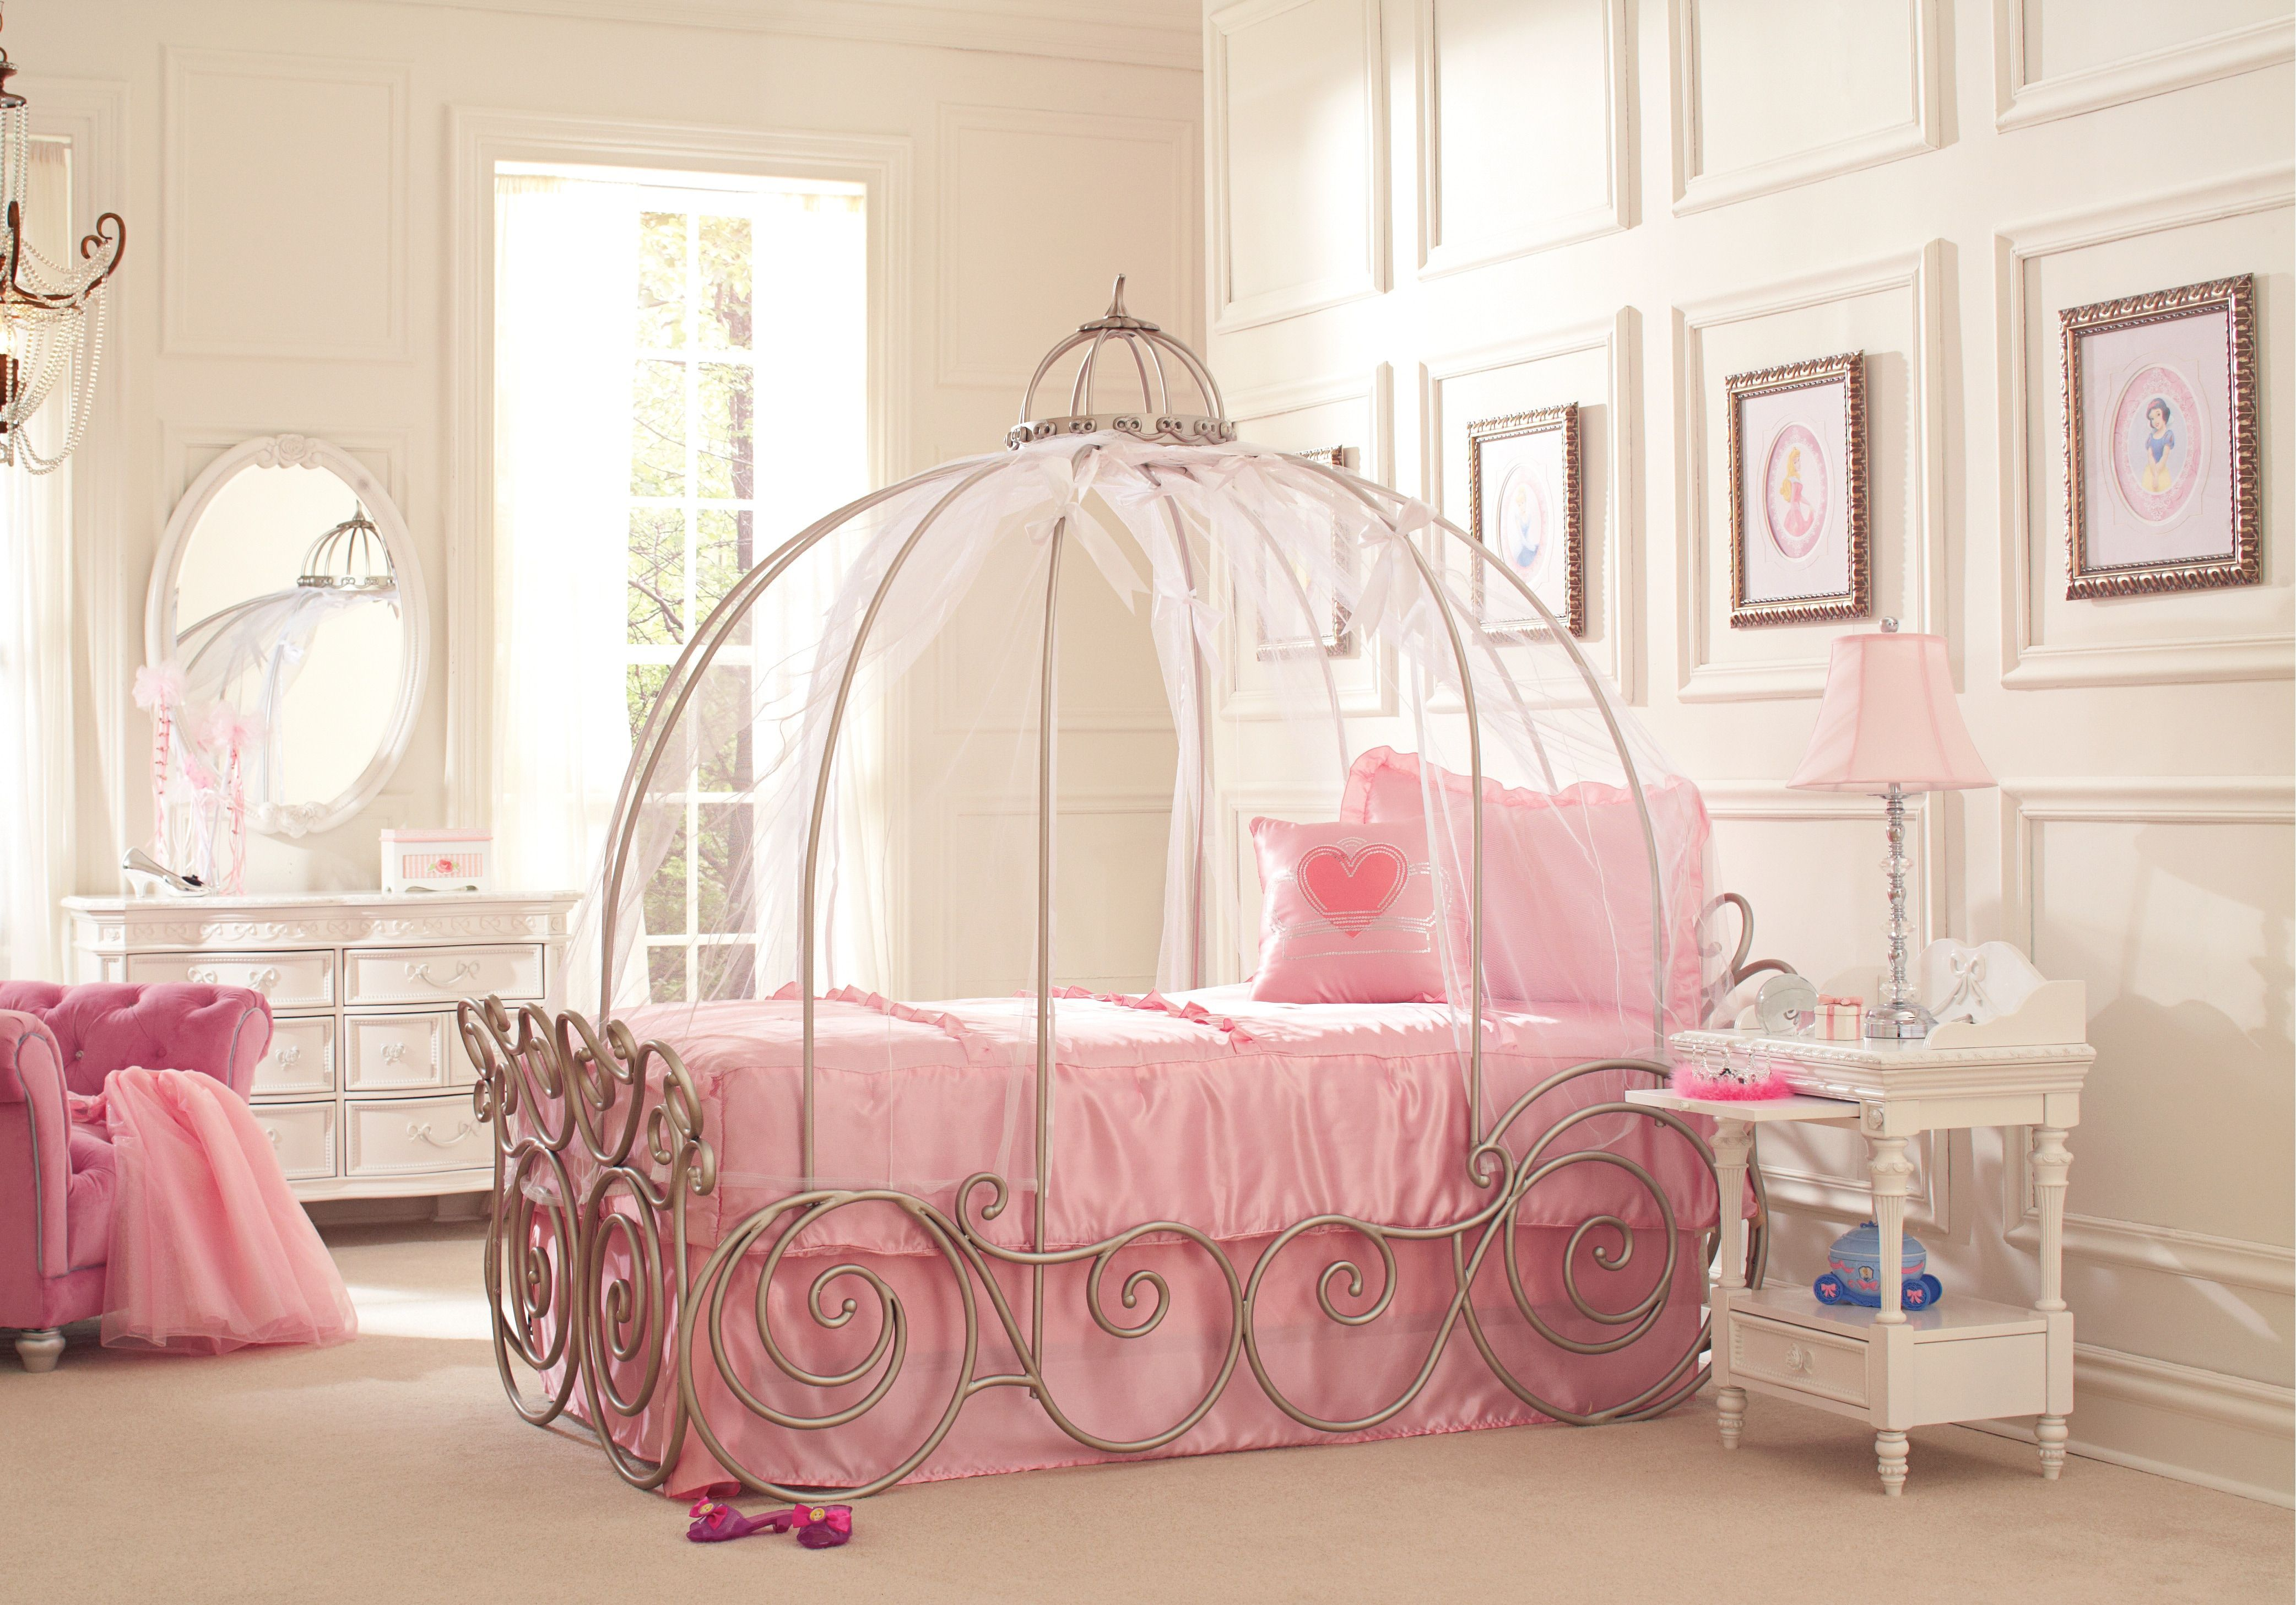 Disney Princess 6 Pc Twin Carriage Bedroom Disney Princess Metal Princess Bedroom Set Girls Bedroom Sets Disney Princess Bedroom